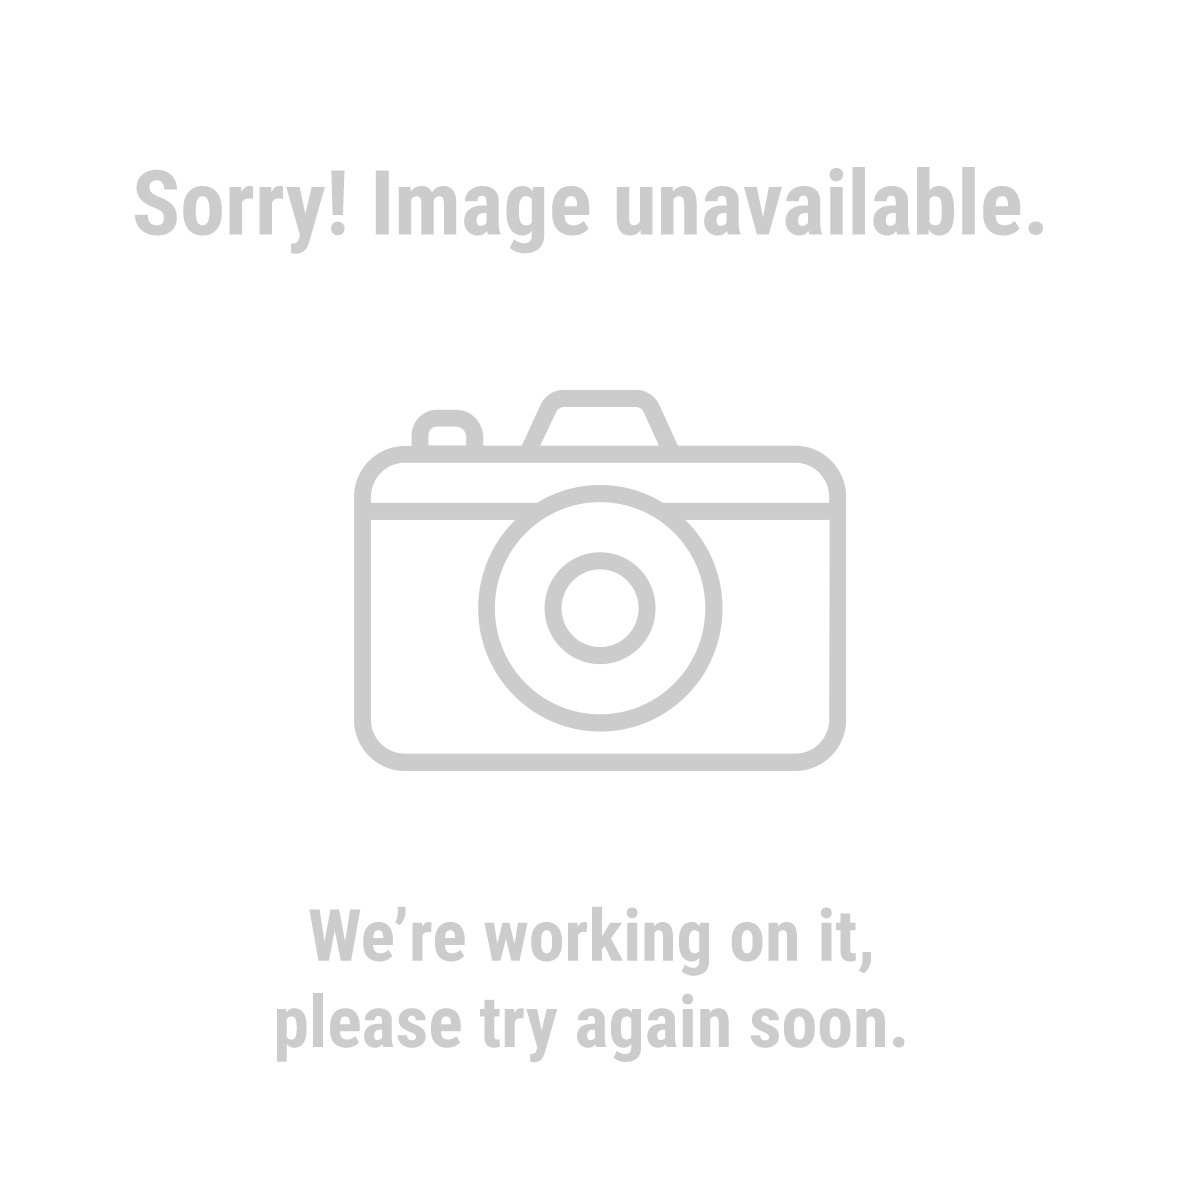 Central Machinery® Powered by Predator 62365 Towable Ride-On Trencher